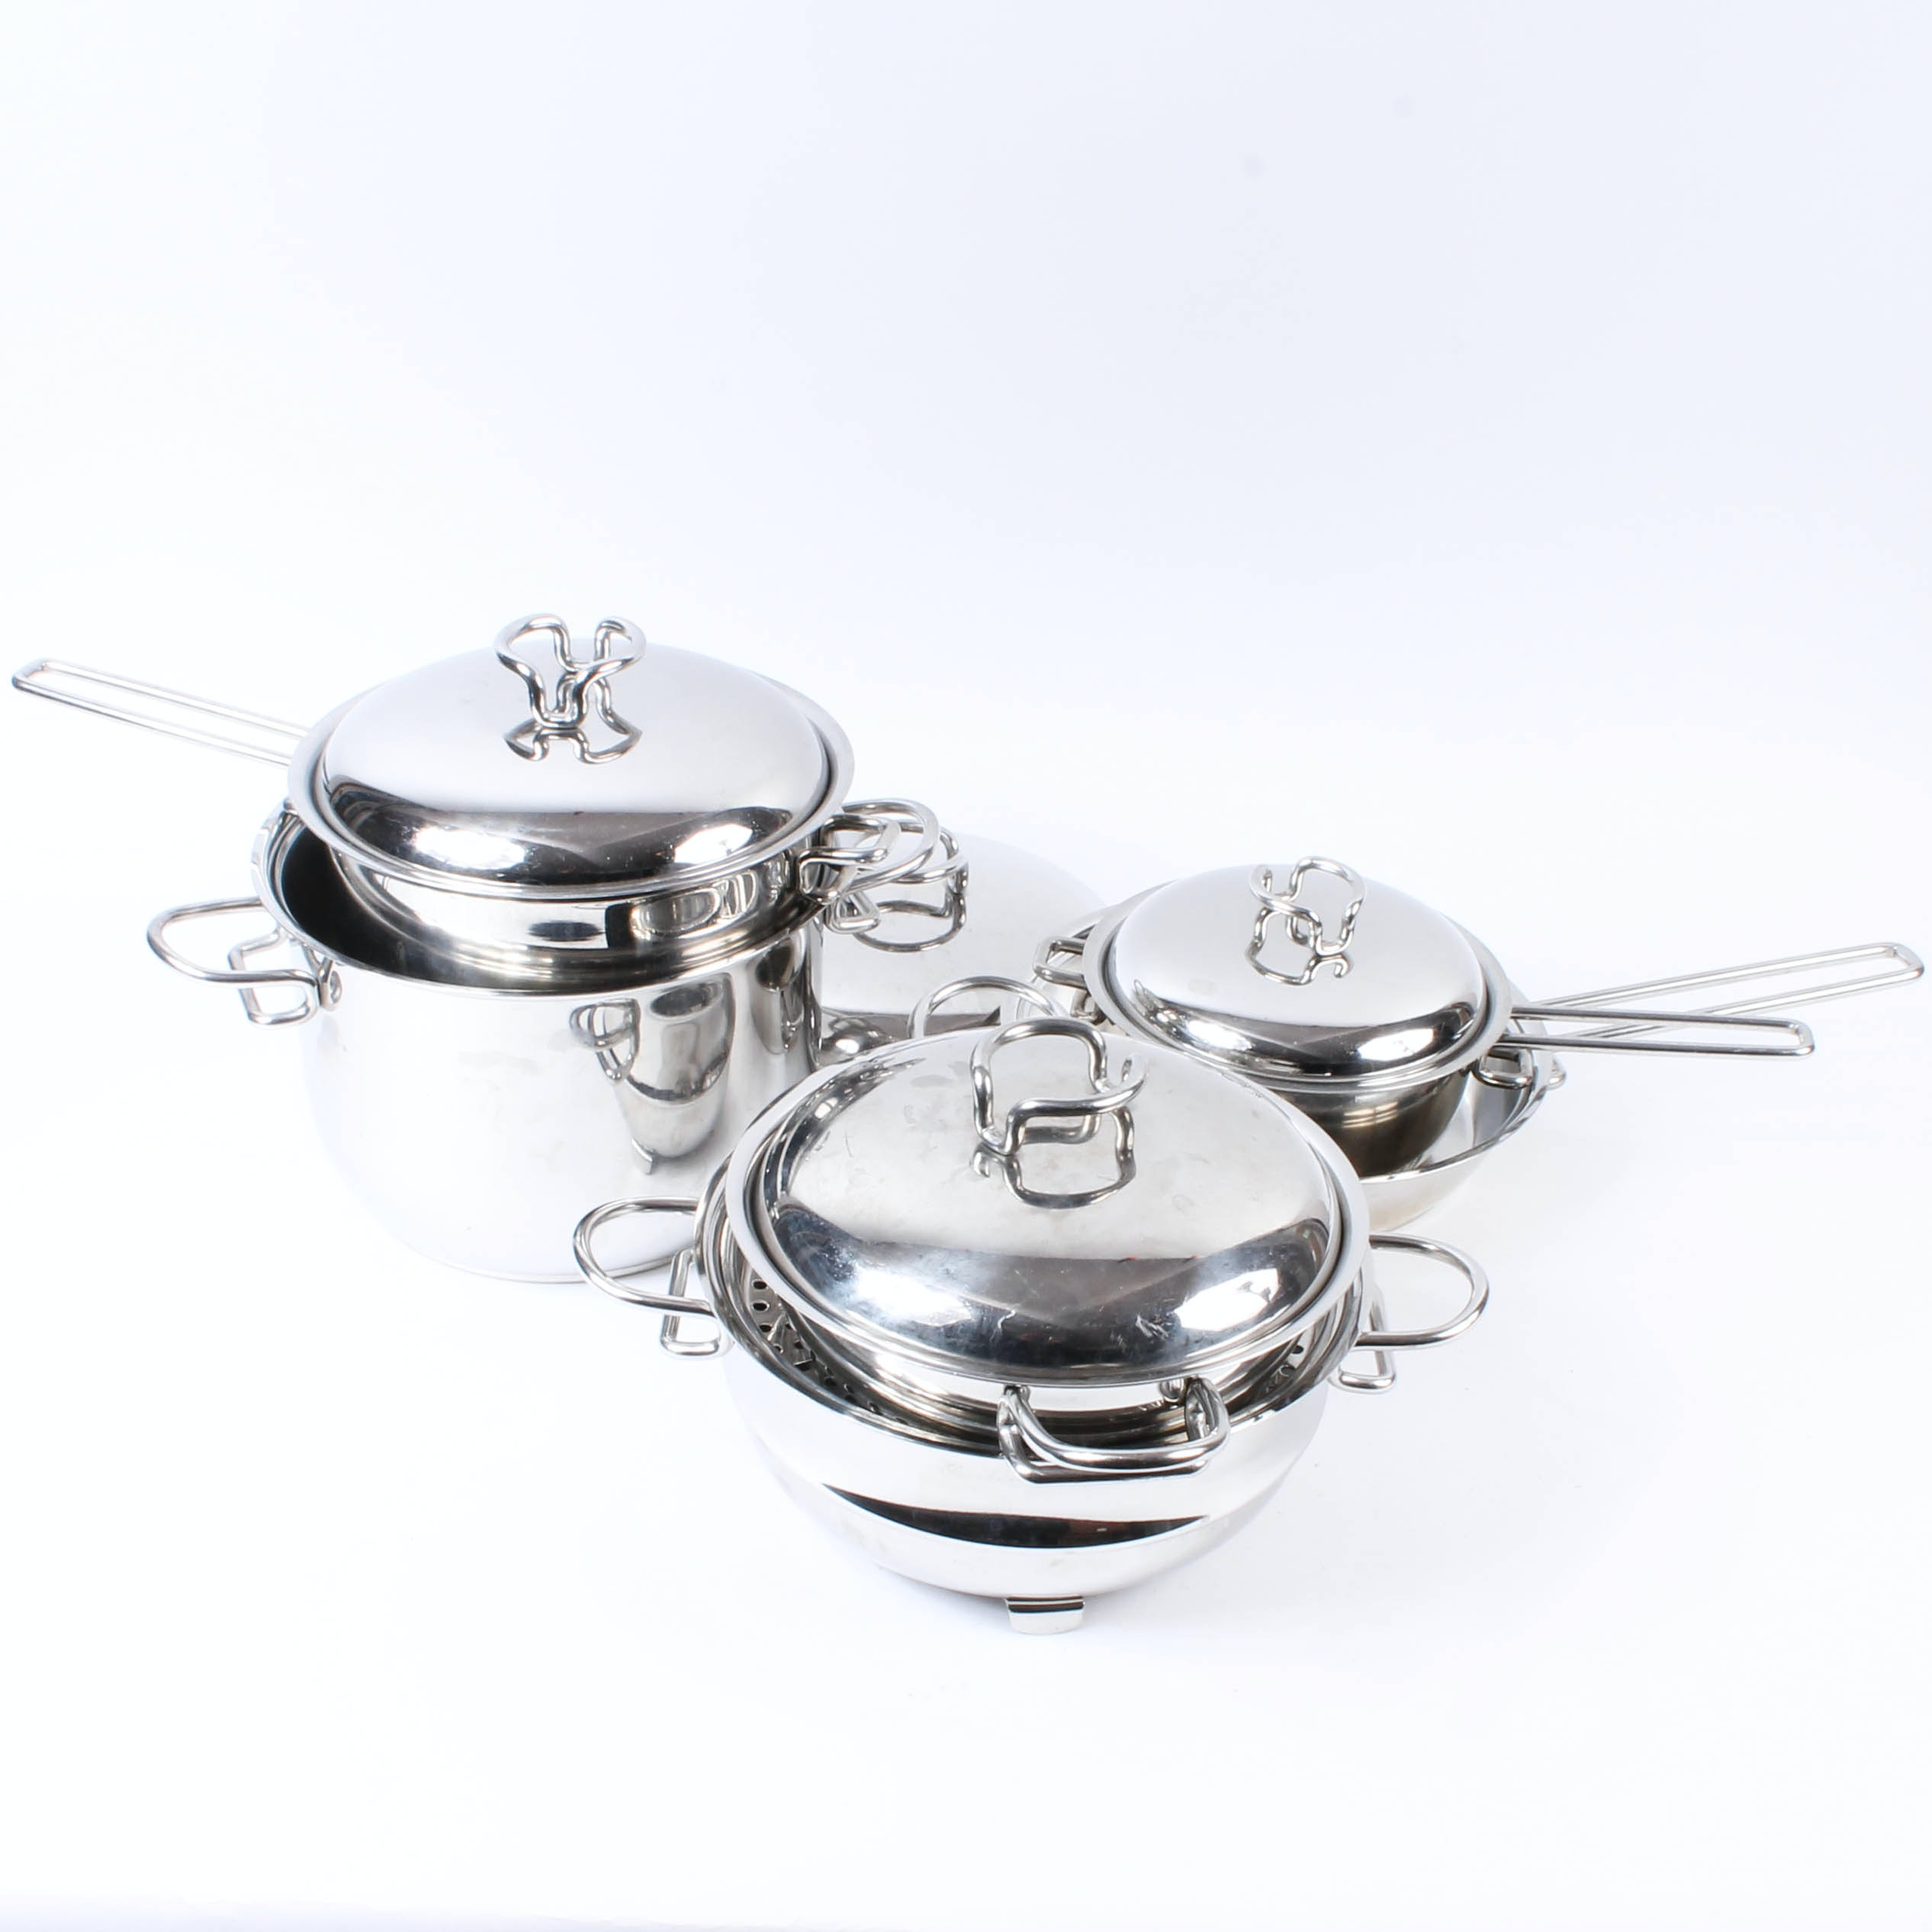 Stainless Steel Cookware Set by Zini